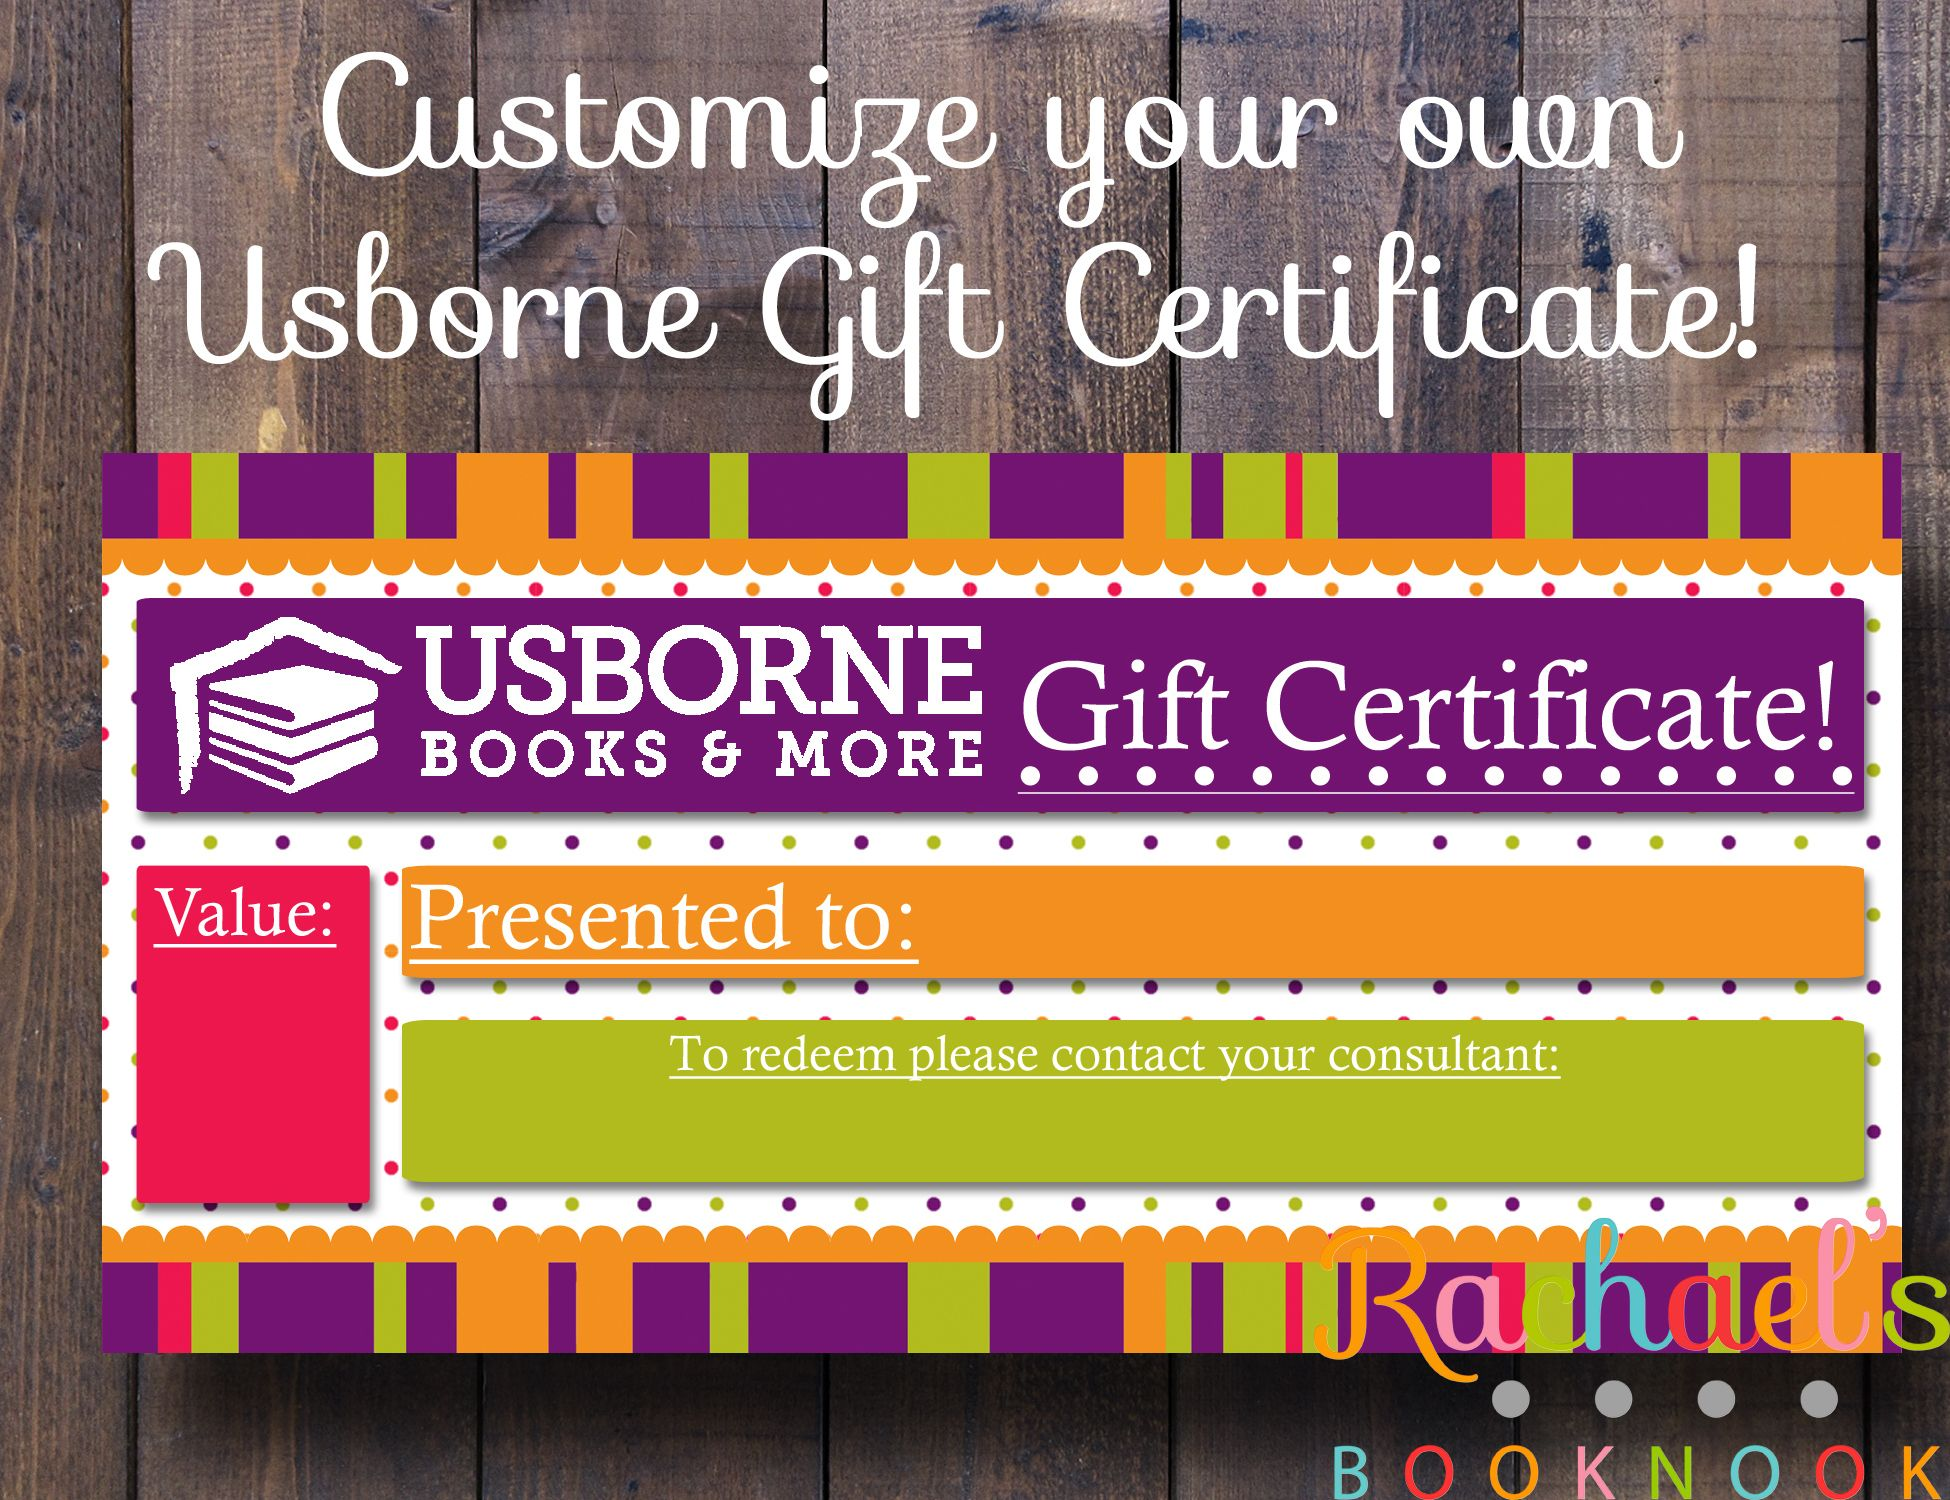 Best 25 Gift certificates ideas – Make Your Own Gift Certificates Free